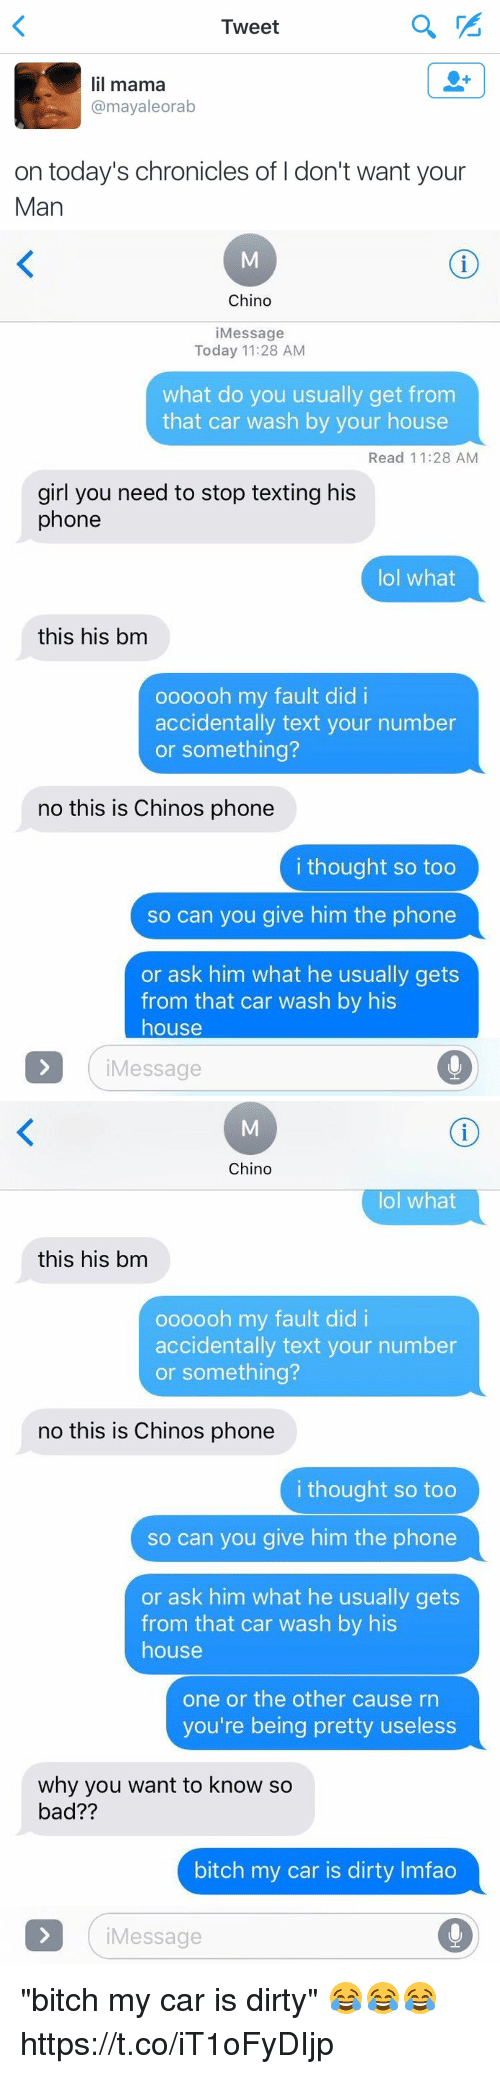 """Bad, Bad Bitch, and Bitch: I weet  lil mama  @mayaleorab  on today's chronicles of I don't want your  Man   Chino  iMessage  Today 11:28 AM  what do you usually get from  that car wash by your house  Read 11:28 AM  girl you need to stop texting his  phone  lol what  this his bm  oooooh my fault did i  accidentally text your number  or something?  no this is Chinos phone  i thought so too  so can you give him the phone  or ask him what he usually gets  from that car wash by his  house  iMessage   Chino  lol what  this his bm  oooooh my fault did i  accidentally text your number  or something?  no this is Chinos phone  i thought so too  so can you give him the phone  or ask him what he usually gets  from that car wash by his  house  one or the other cause rn  you're being pretty useless  why you want to know so  bad??  bitch my car is dirty Imfao  iMessage """"bitch my car is dirty"""" 😂😂😂 https://t.co/iT1oFyDIjp"""